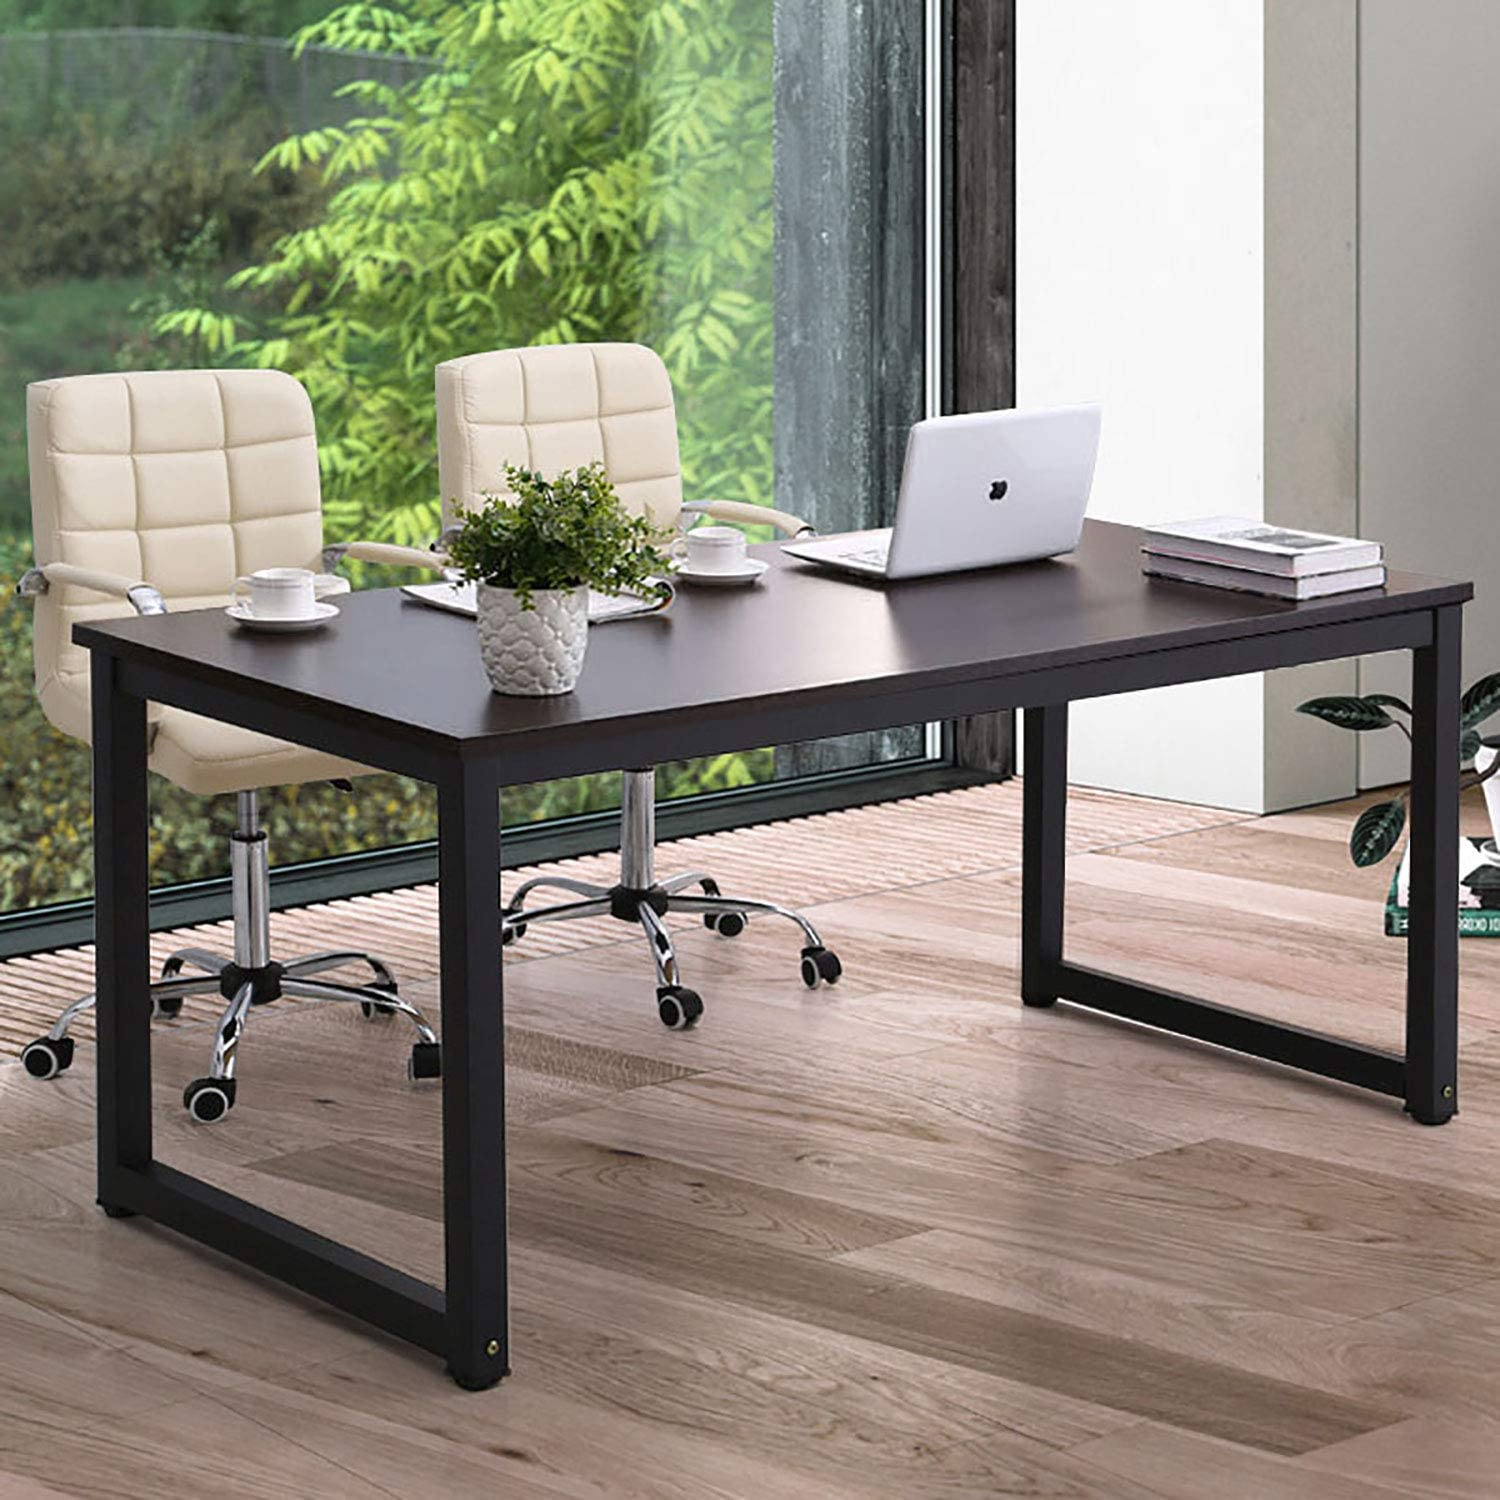 Amazon Com Home Office Desk 63 Inch Large Computer Desk Computer Table For Home Office With Wide Workstation Tabletop For Writing Made Of The Finish Wood Board And Sturdy Steel Legs Kitchen Dining